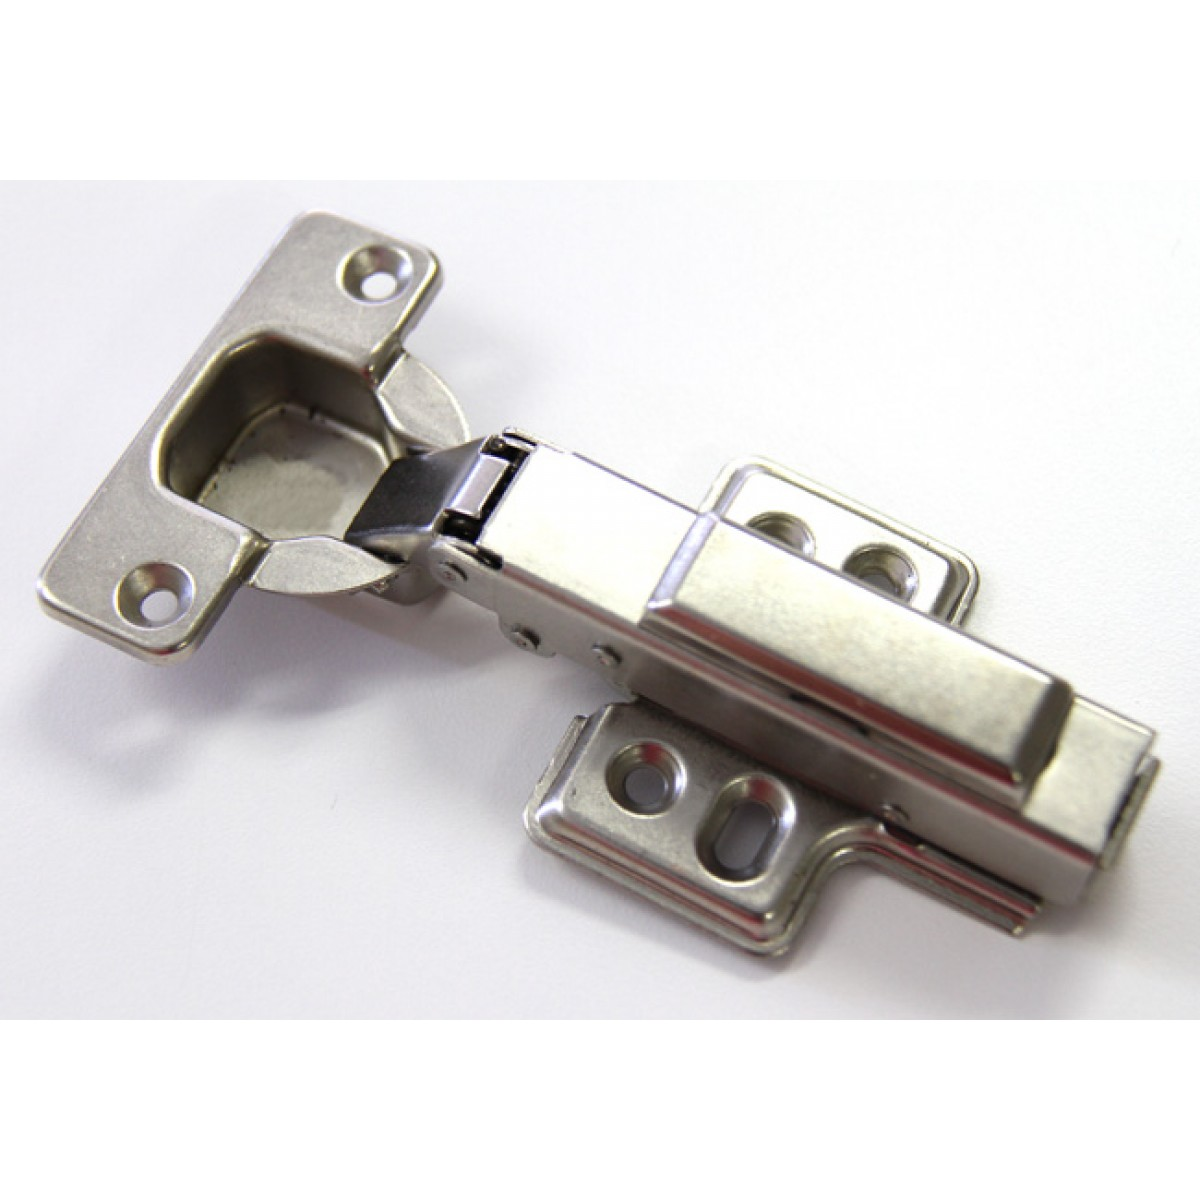 Hydraulic Hinges For Kitchen Cabinets European Cabinet Concealed Hydraulic Soft Close Full